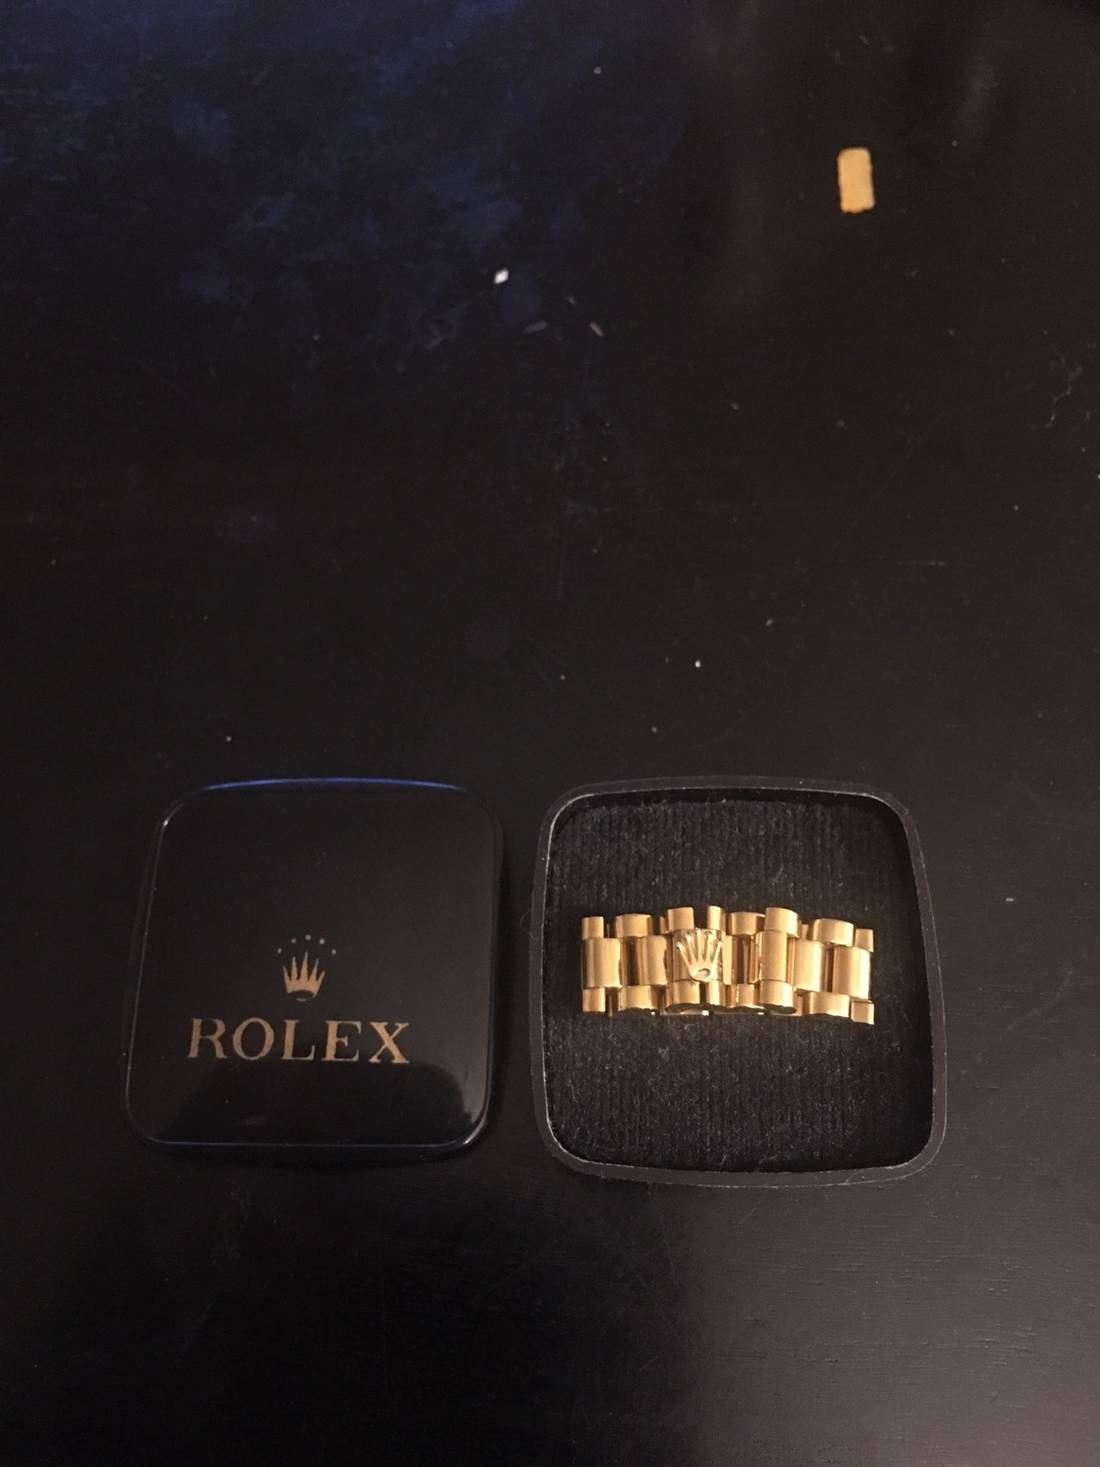 Unbranded link ring with rolex symbol size one size jewelry unbranded link ring with rolex symbol size one size biocorpaavc Choice Image